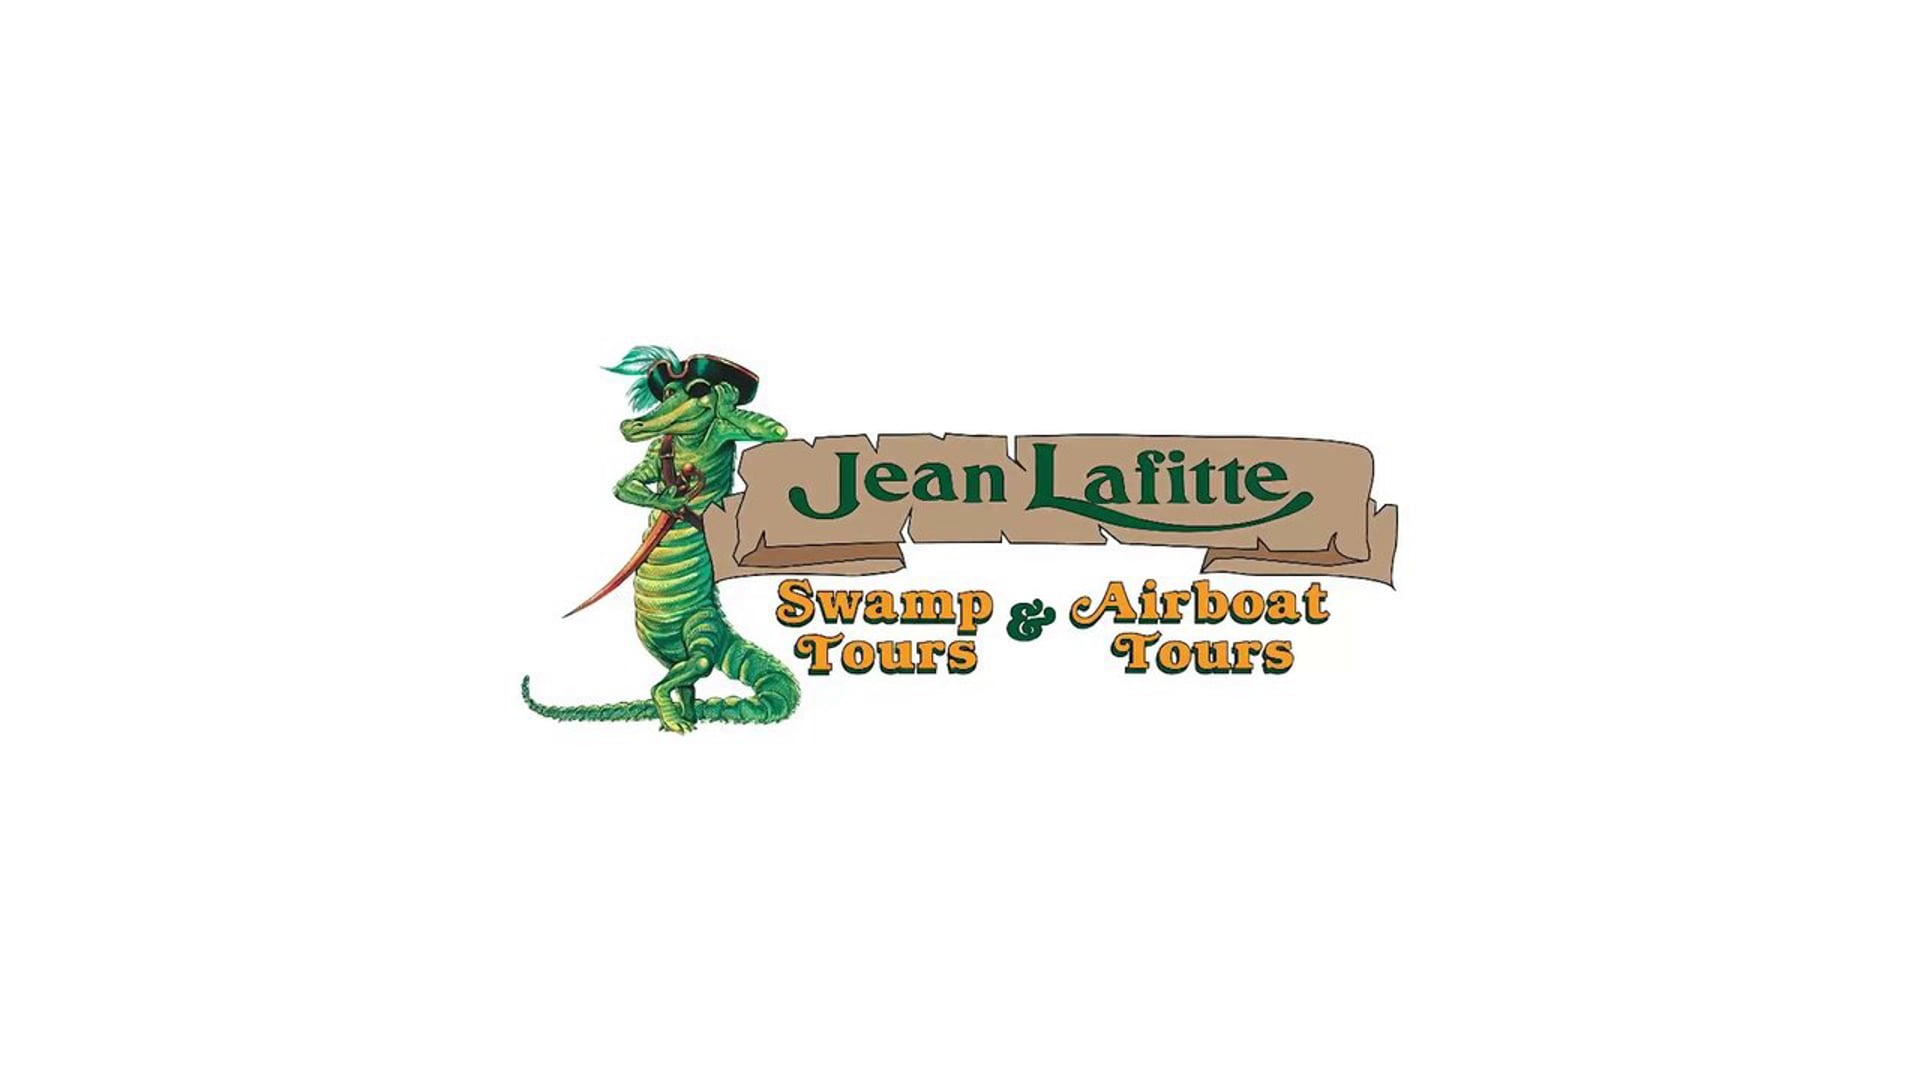 Jean Lafitte Swamp Tours & Airboat Tours